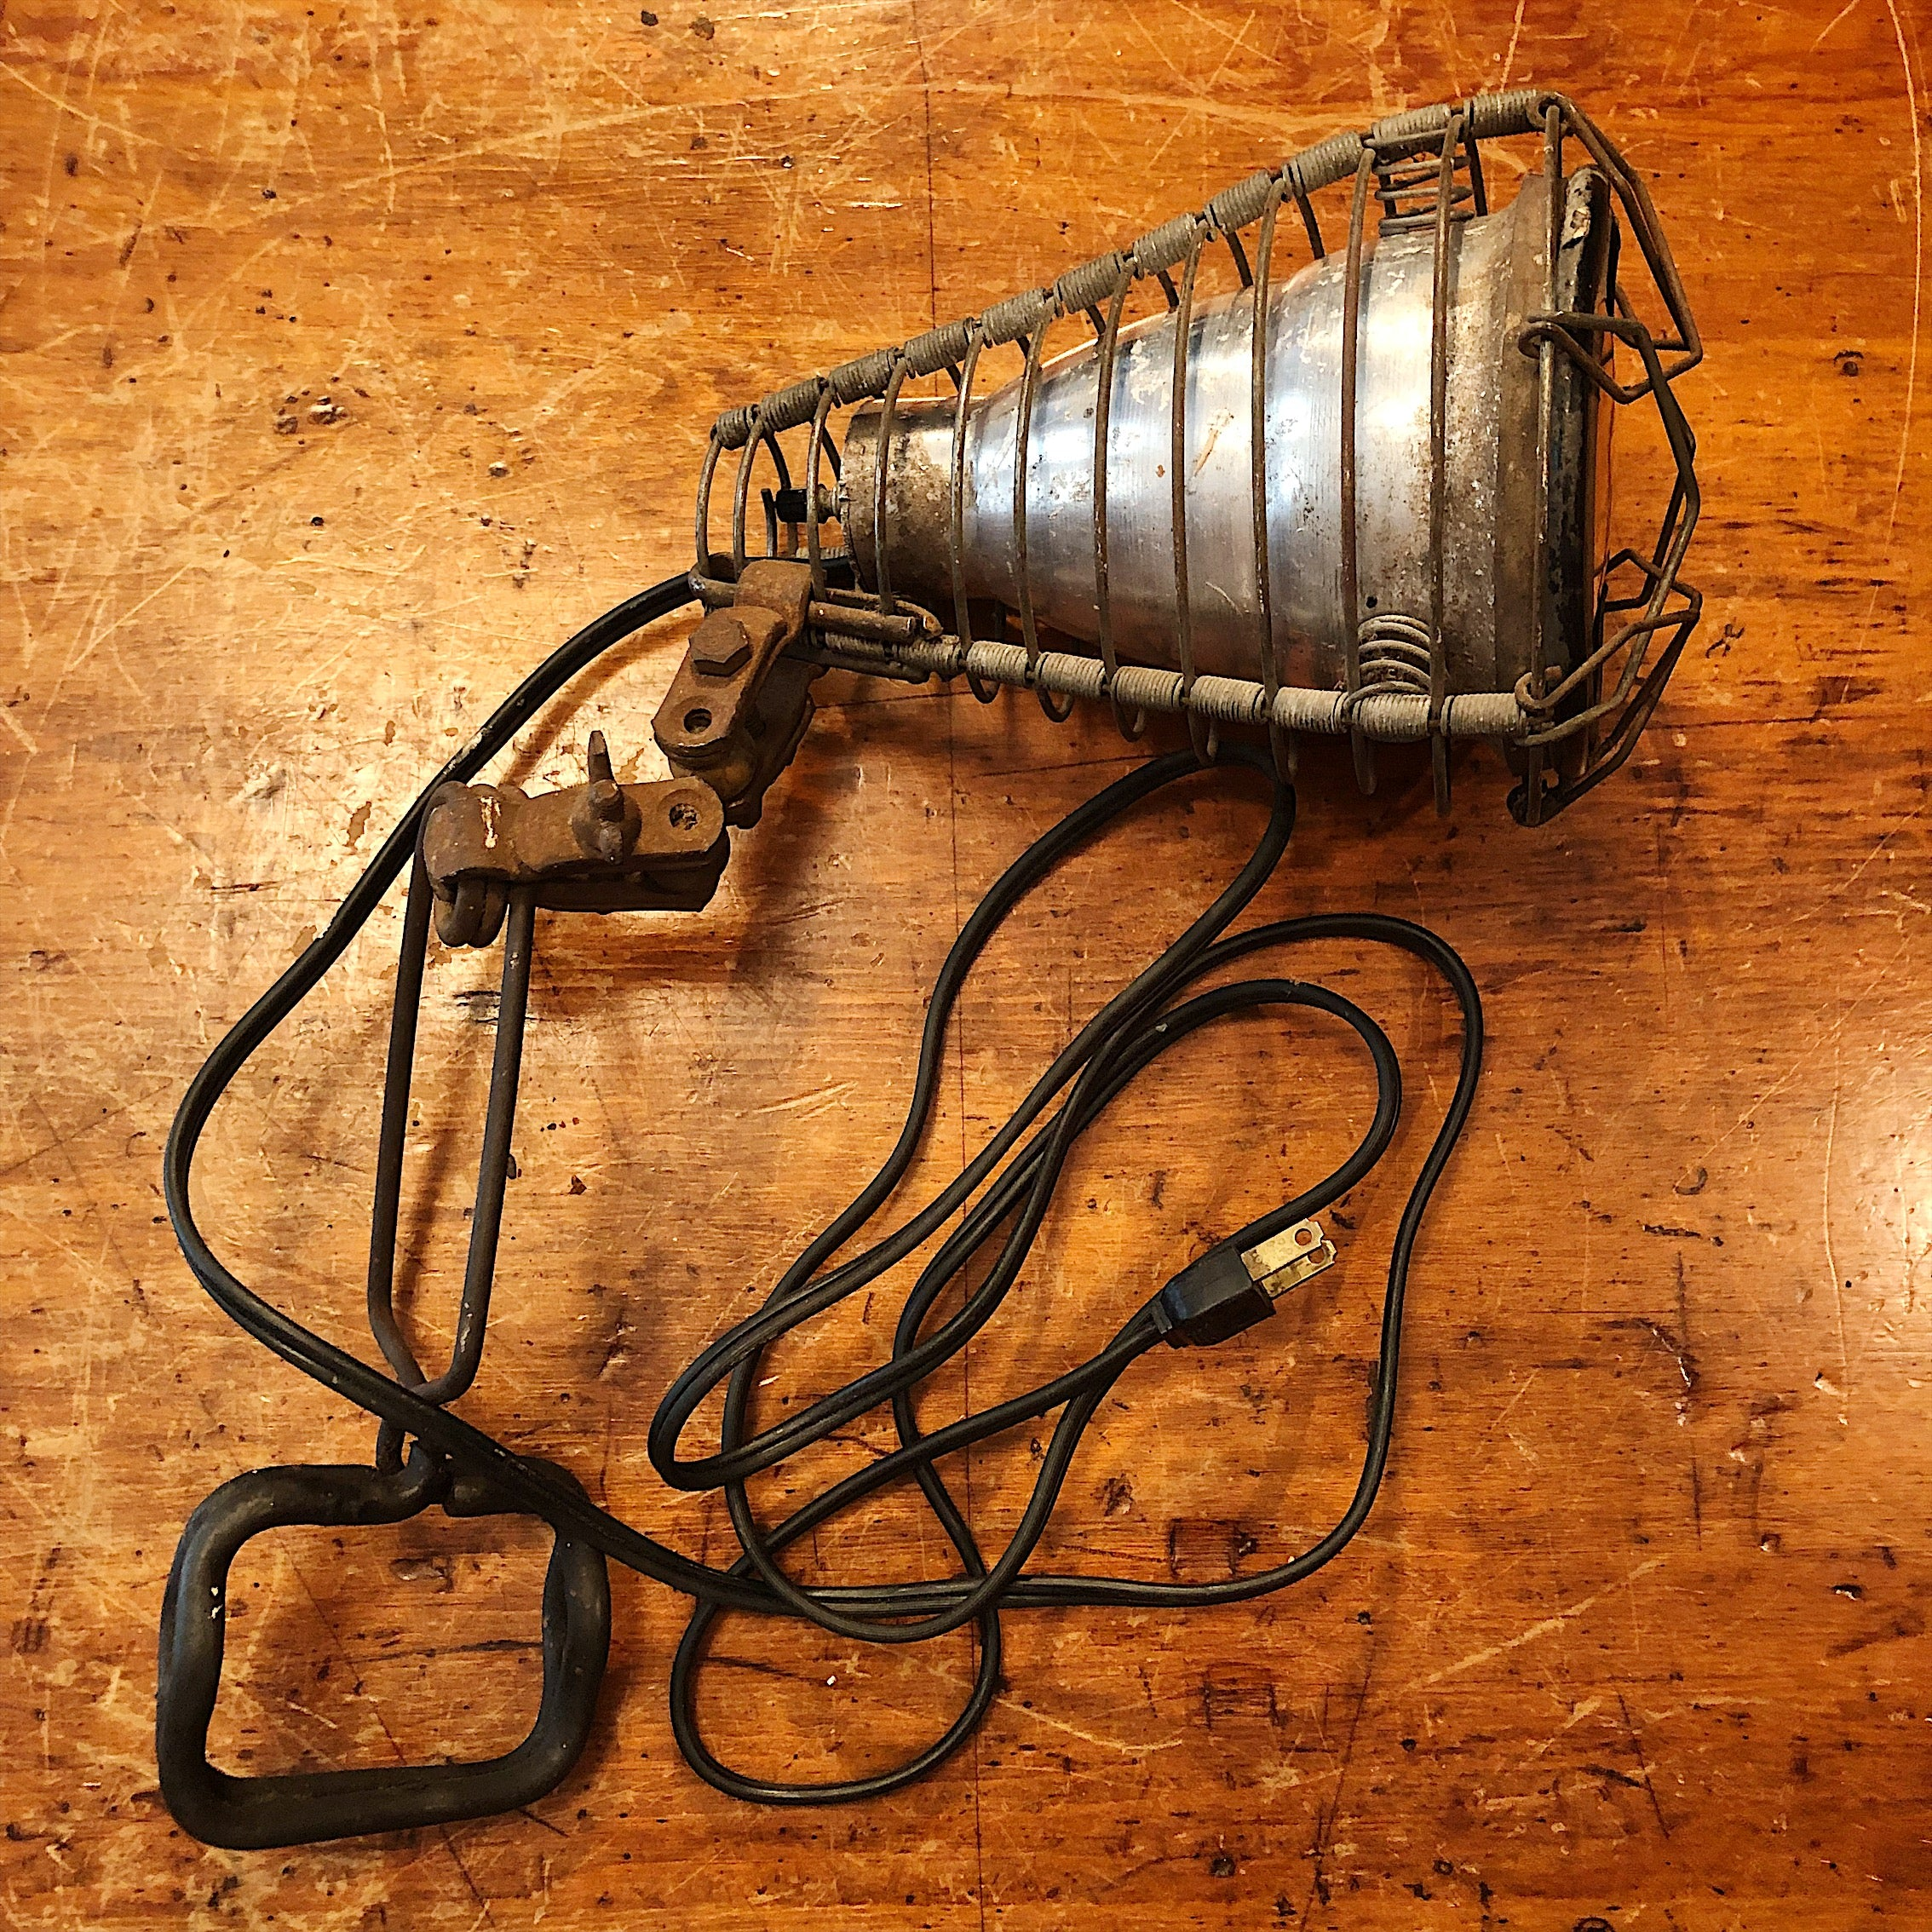 Vintage Shop Clamp Light from Old Phillips 66 Station - 1940s - Unusual Trouble Light Cage - Rare Industrial Decor -  Adjuster